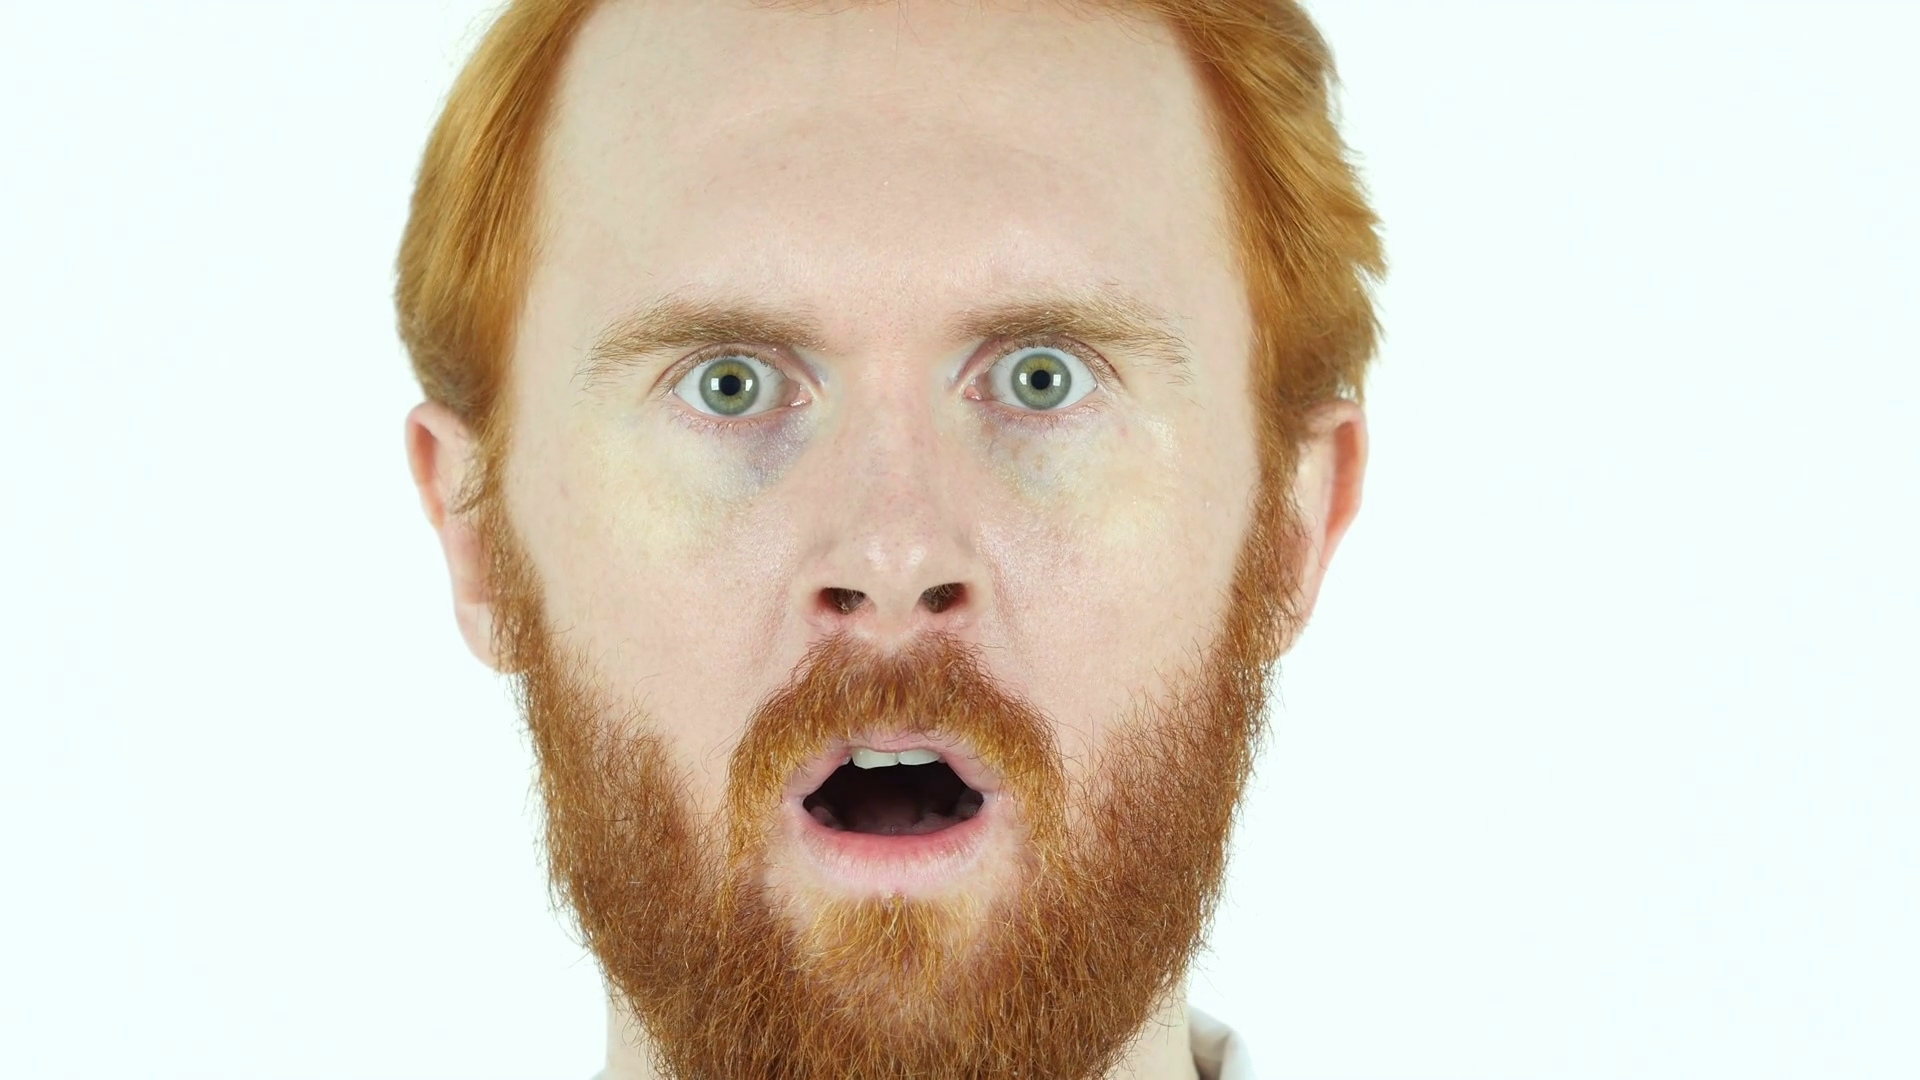 Red Hair Beard Man in Shock, Face Close Up Stock Video Footage ...